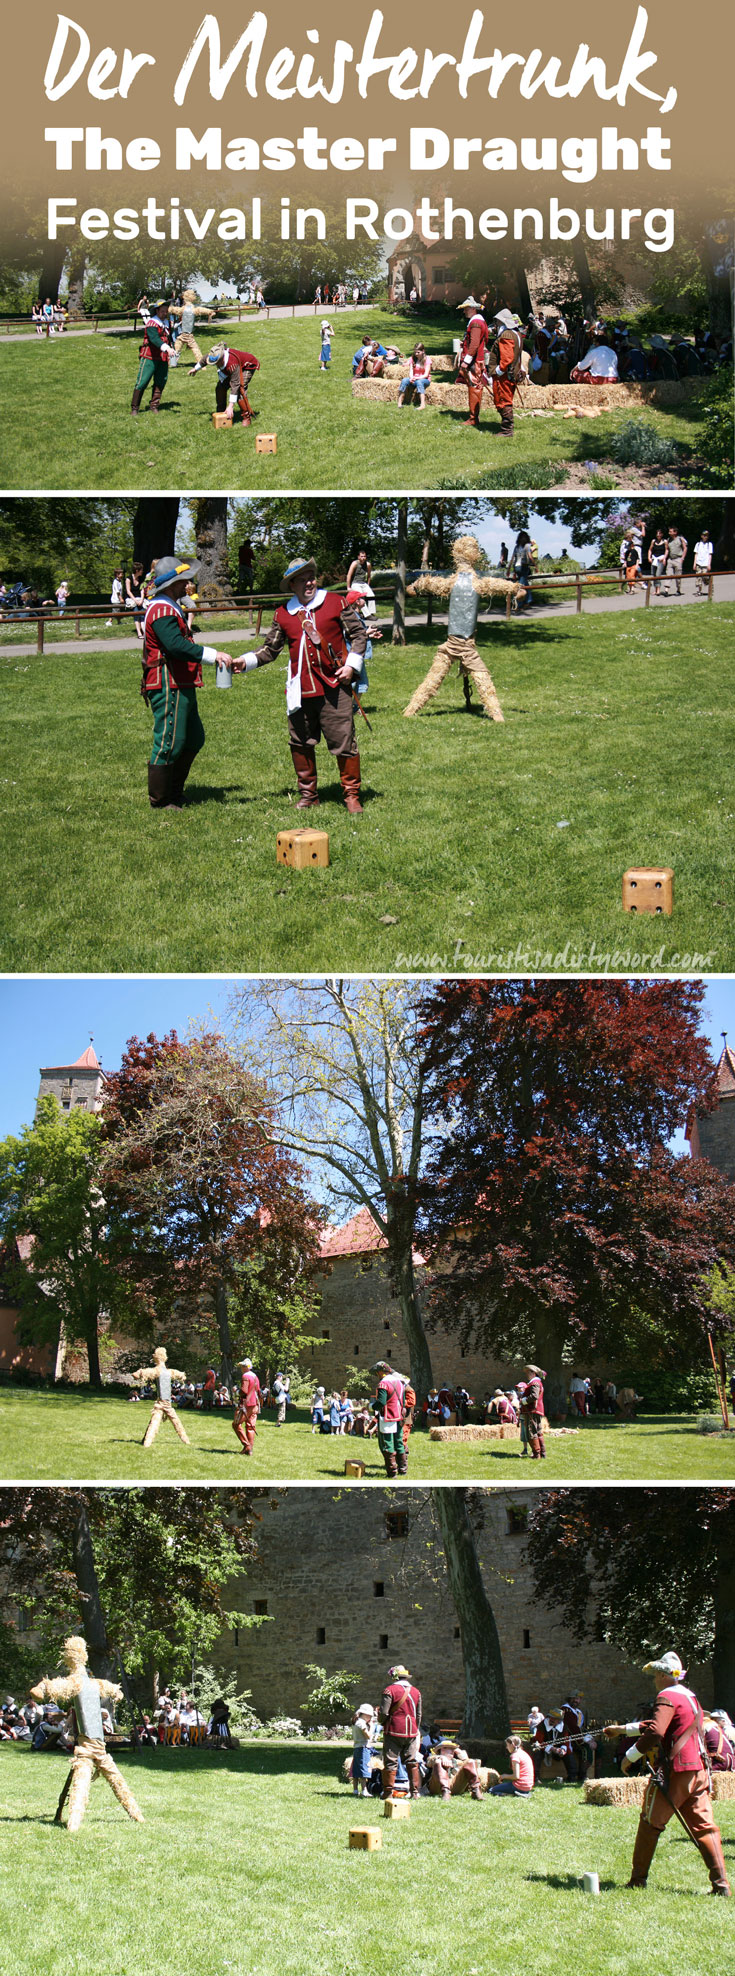 Along the historic town wall of Rothenburg, re-enactors demonstrate lawn games during the Master Draught Festival